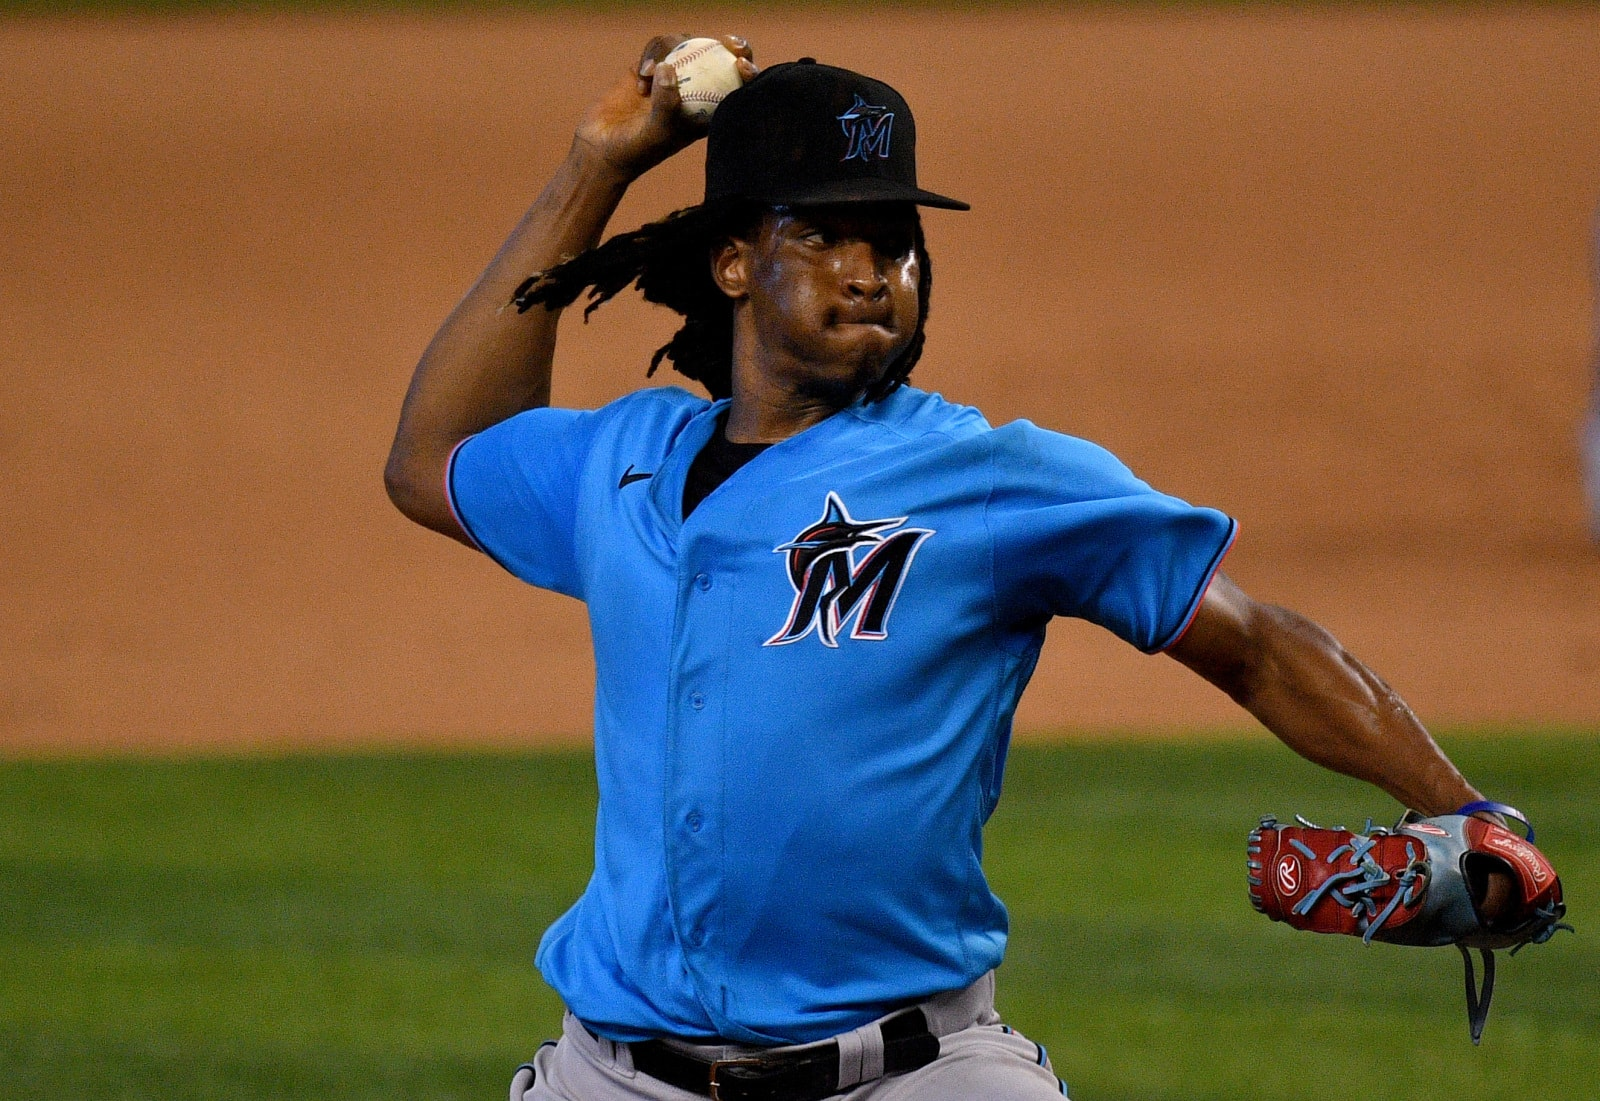 Jose Urena #62 of the Miami Marlins delivers a pitch during an intrasquad game.